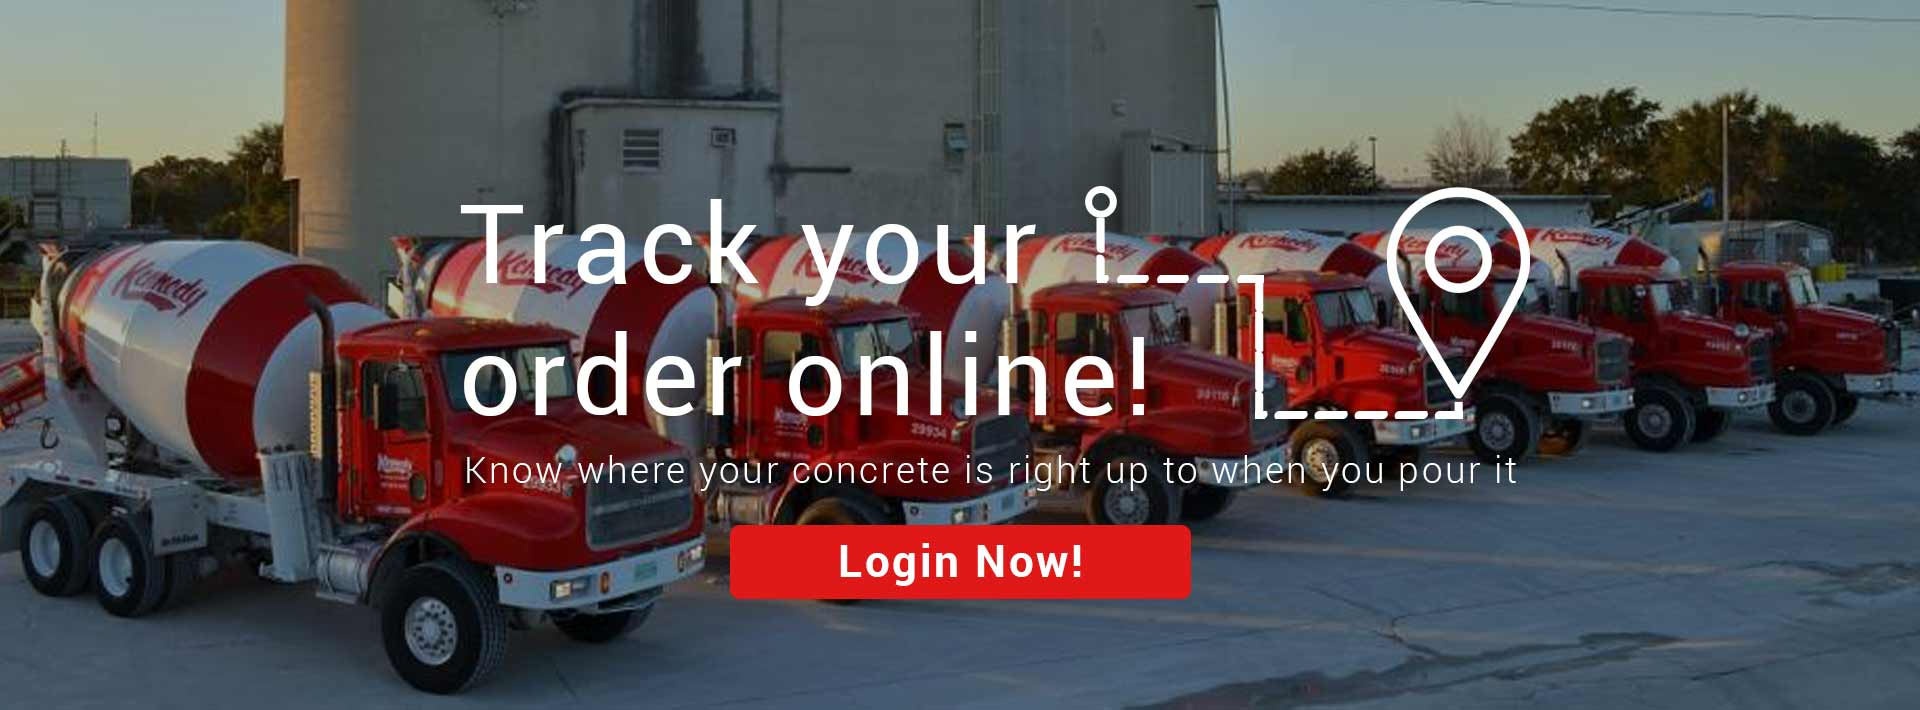 Track your order online